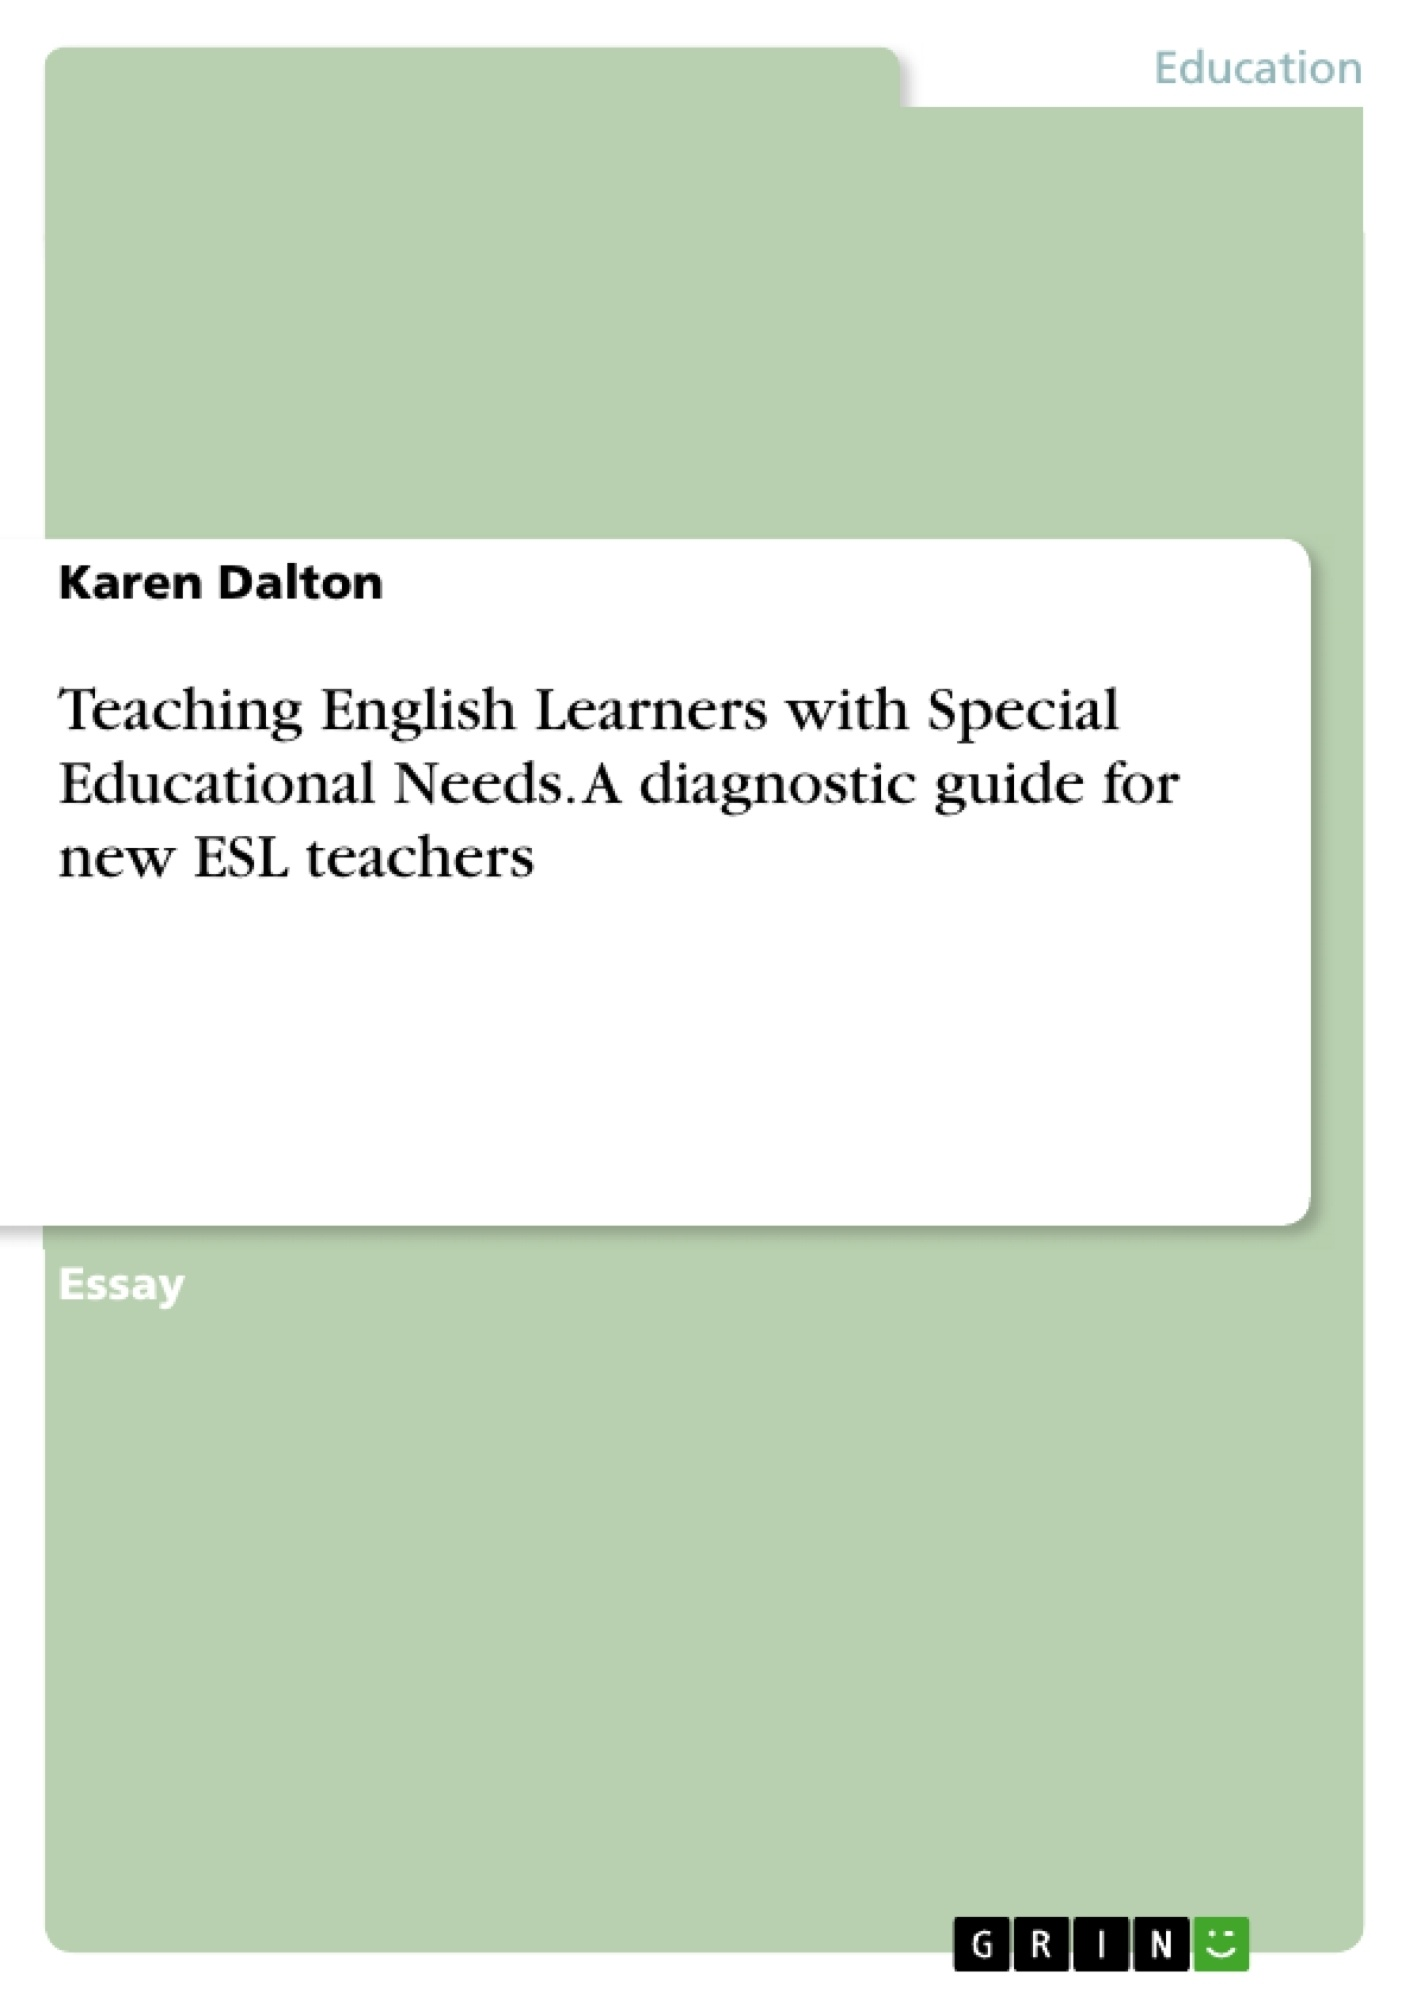 Title: Teaching English Learners with Special Educational Needs. A diagnostic guide for new ESL teachers